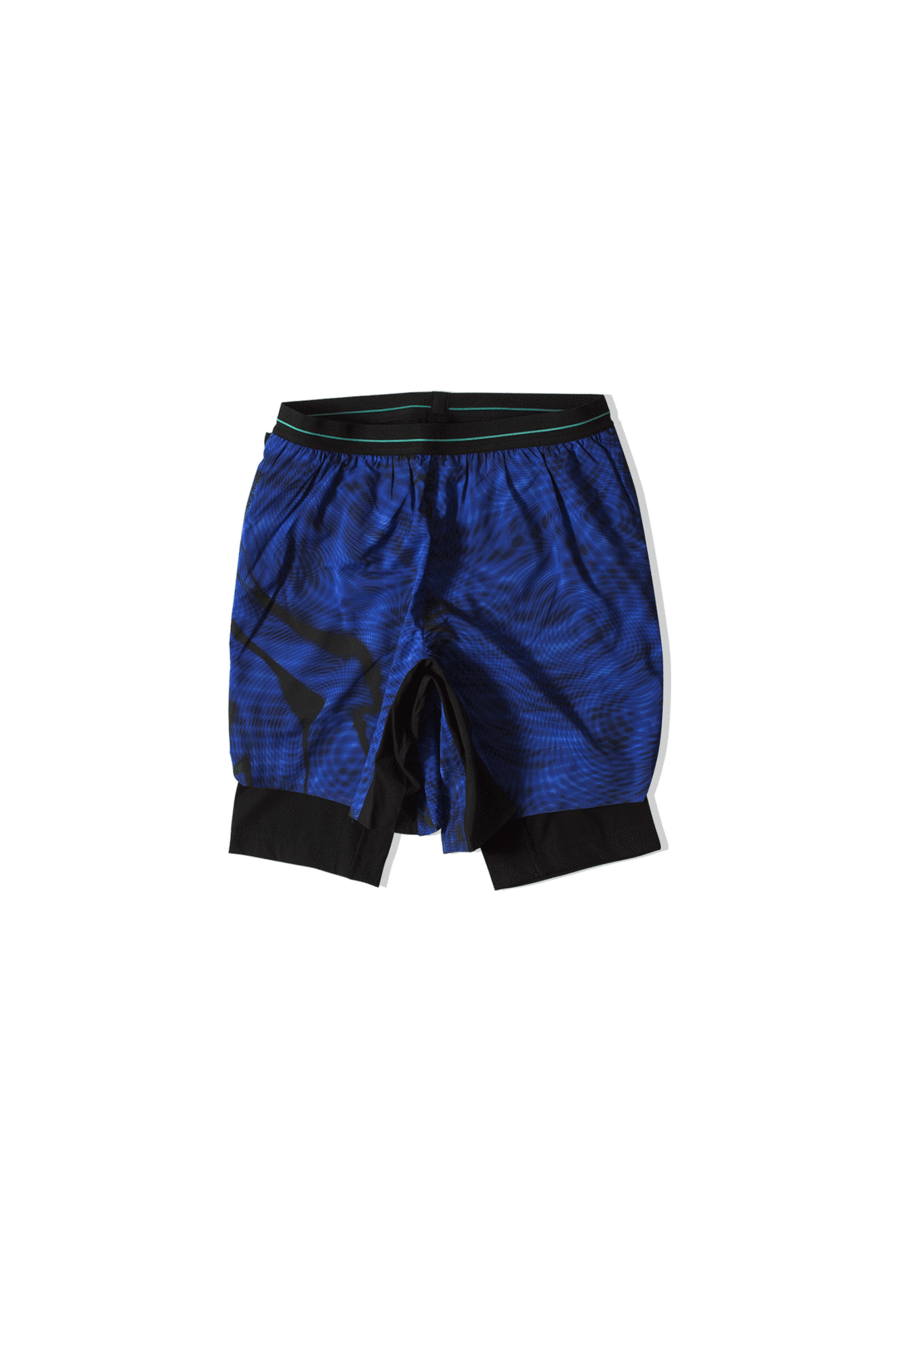 White Mountaineering x Adidas Originals Pantaloni corti Terrex WM 2 In 1 Short Blu EB4573#000#BLU#S - One Block Down